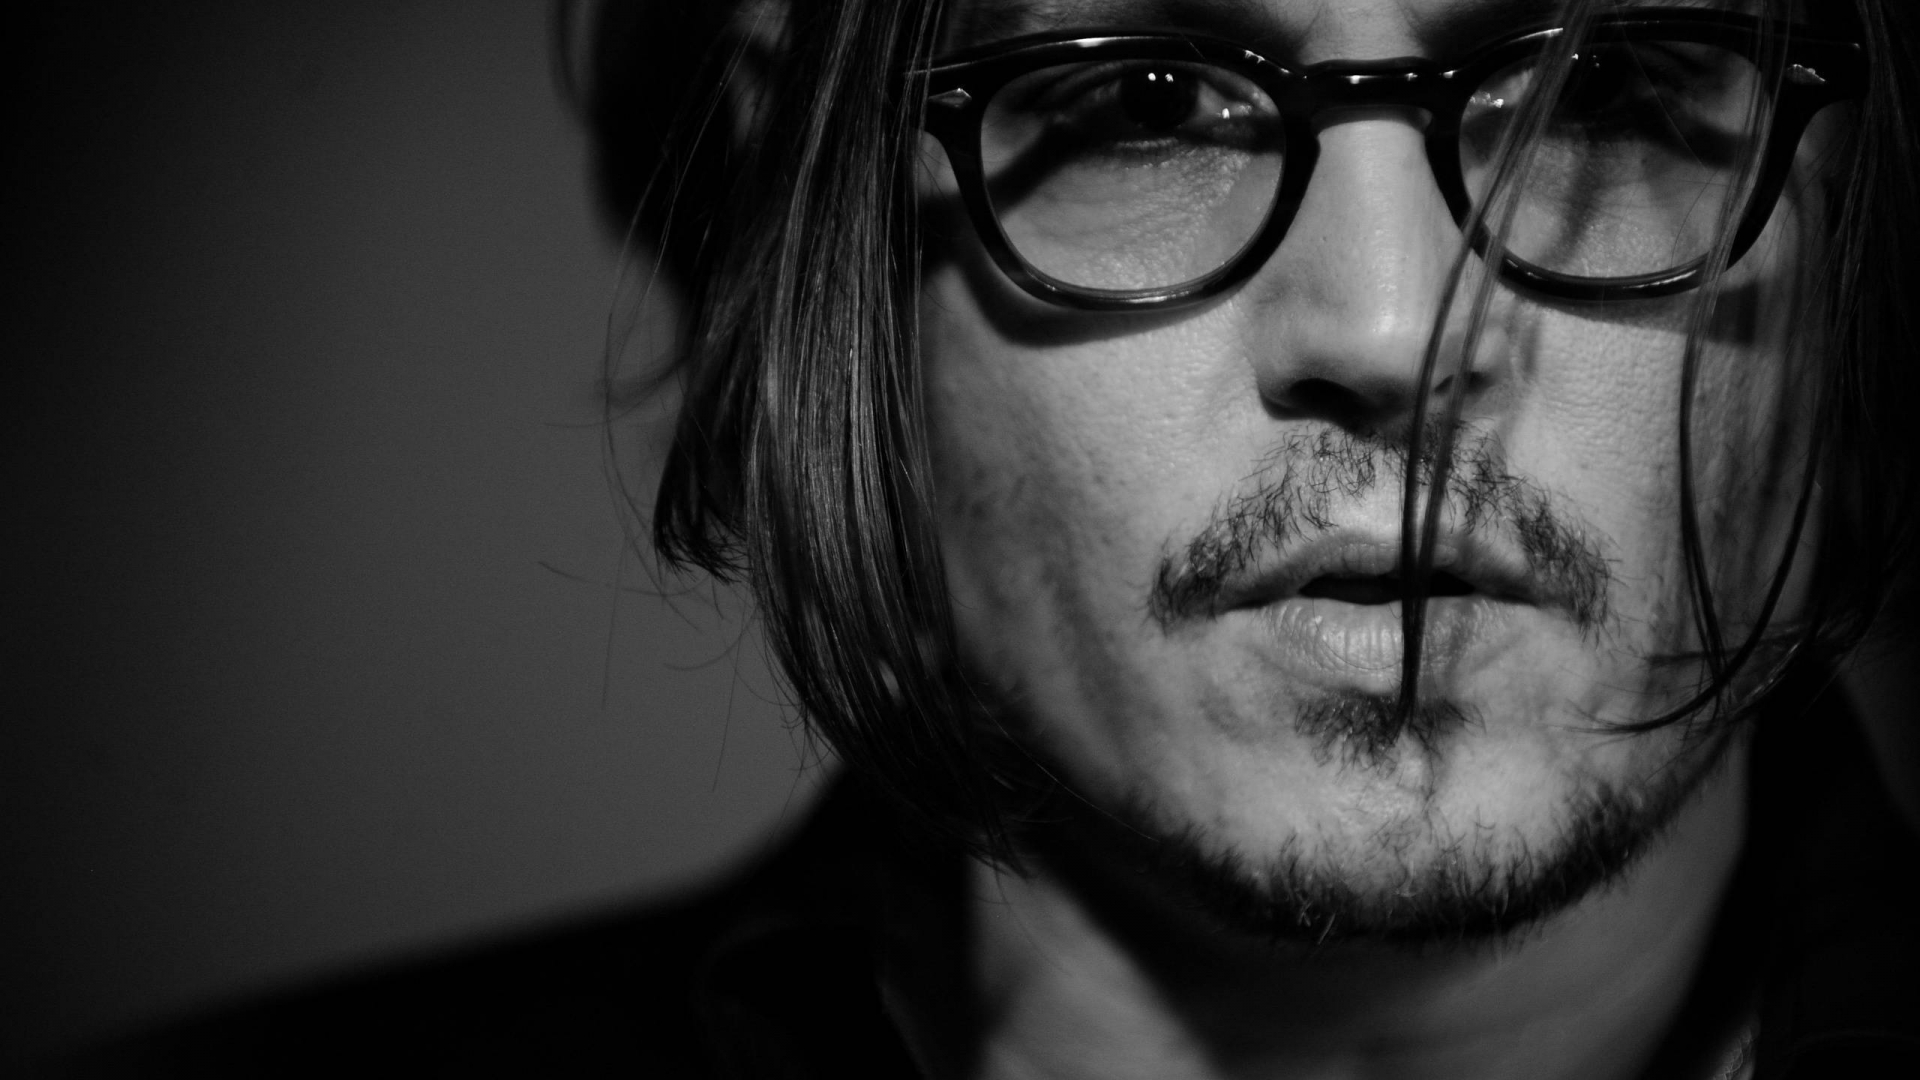 Johnny Depp Monochrome for 1920 x 1080 HDTV 1080p resolution